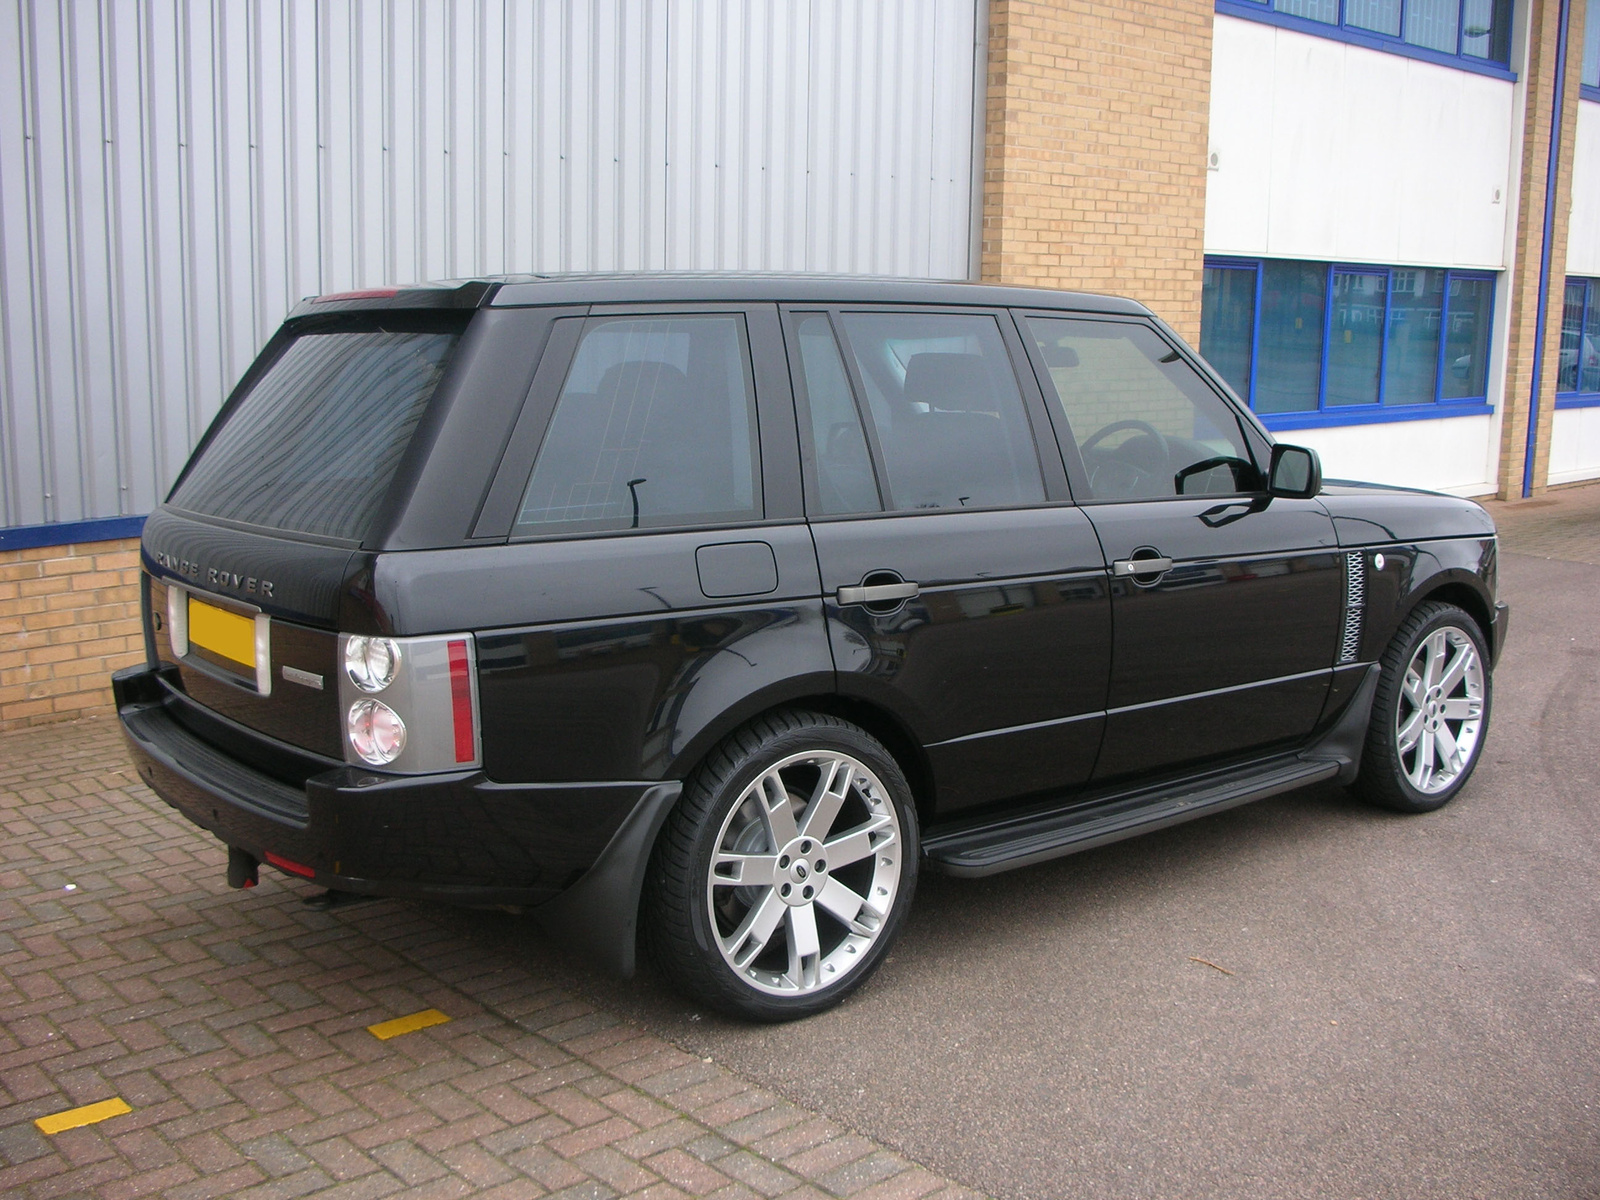 2004 Land Rover Range Rover Vin Number Search